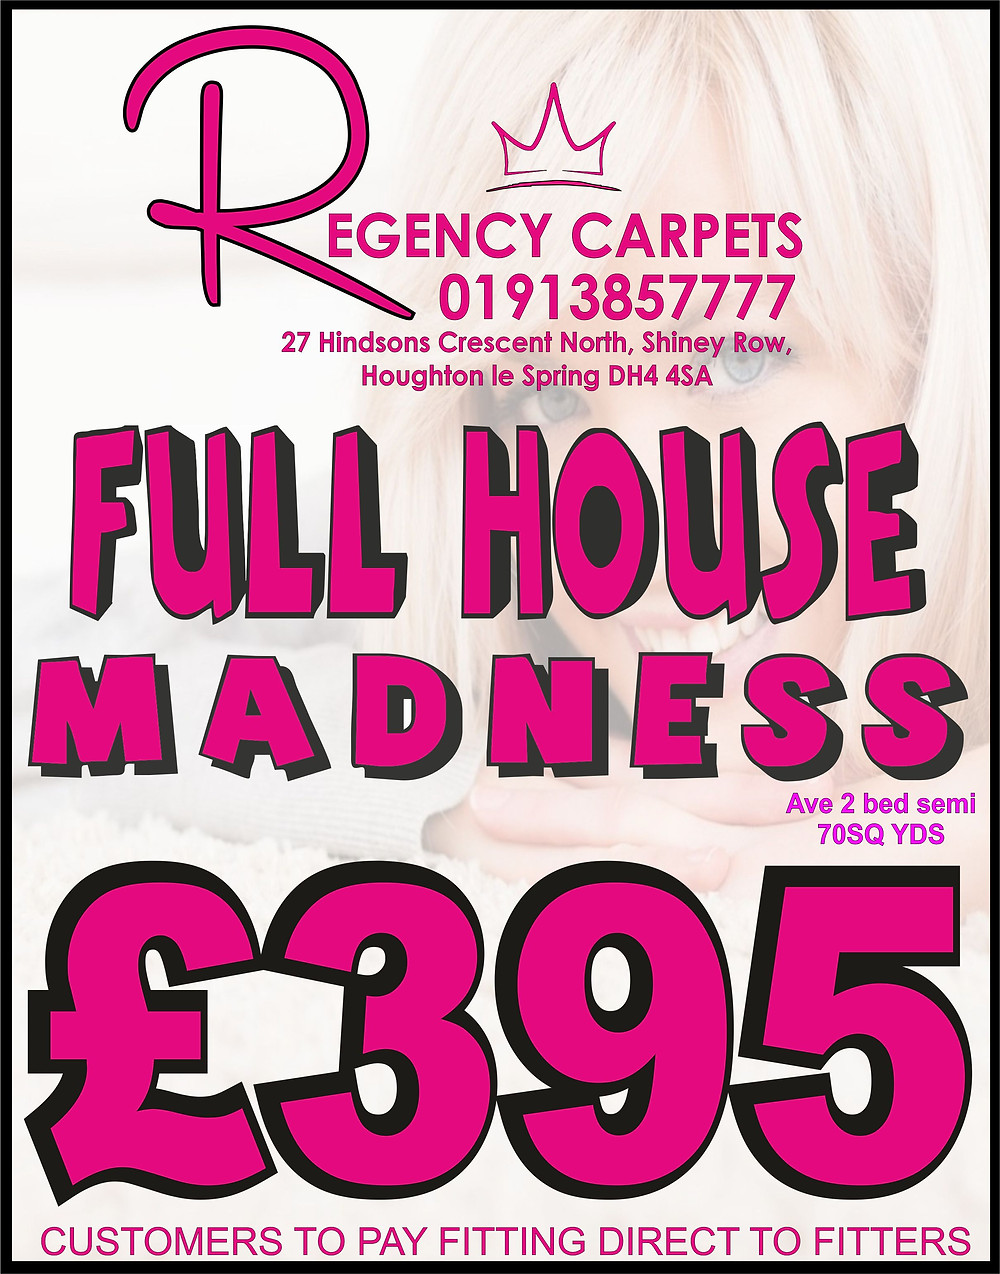 CALL 0191385777 FOR MORE FULL HOUSE DEALS